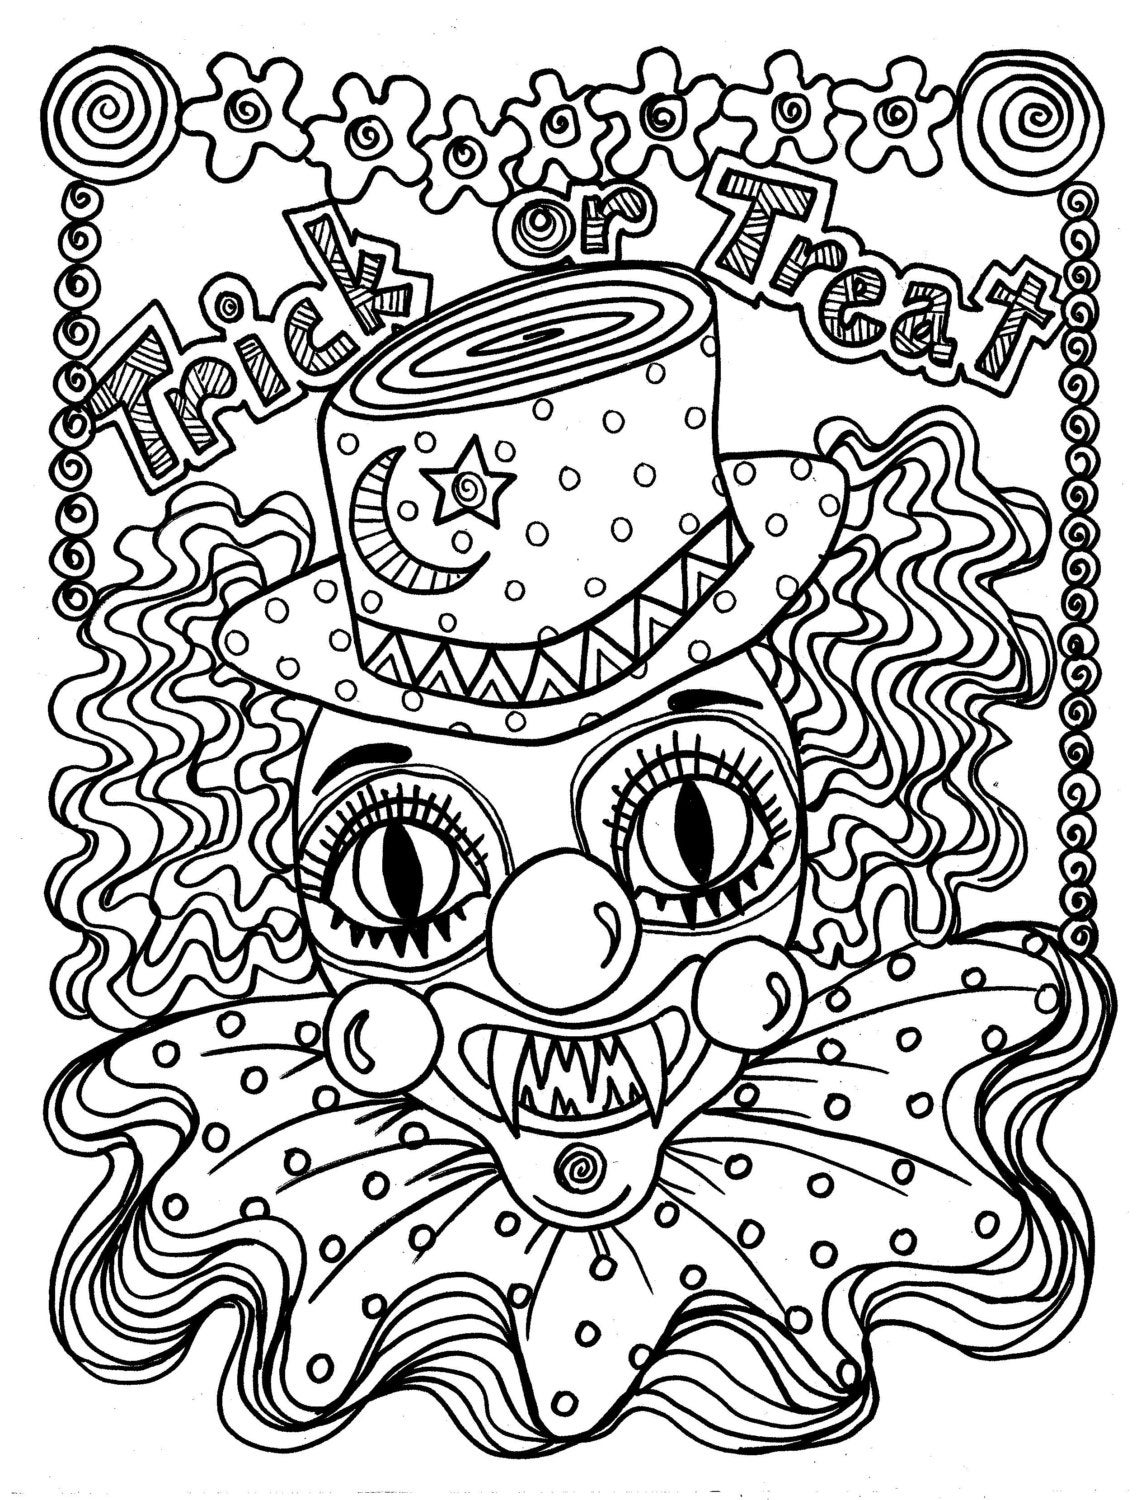 free halloween coloring sheets for adults free halloween coloring pages for adults kids sheets free coloring adults for halloween